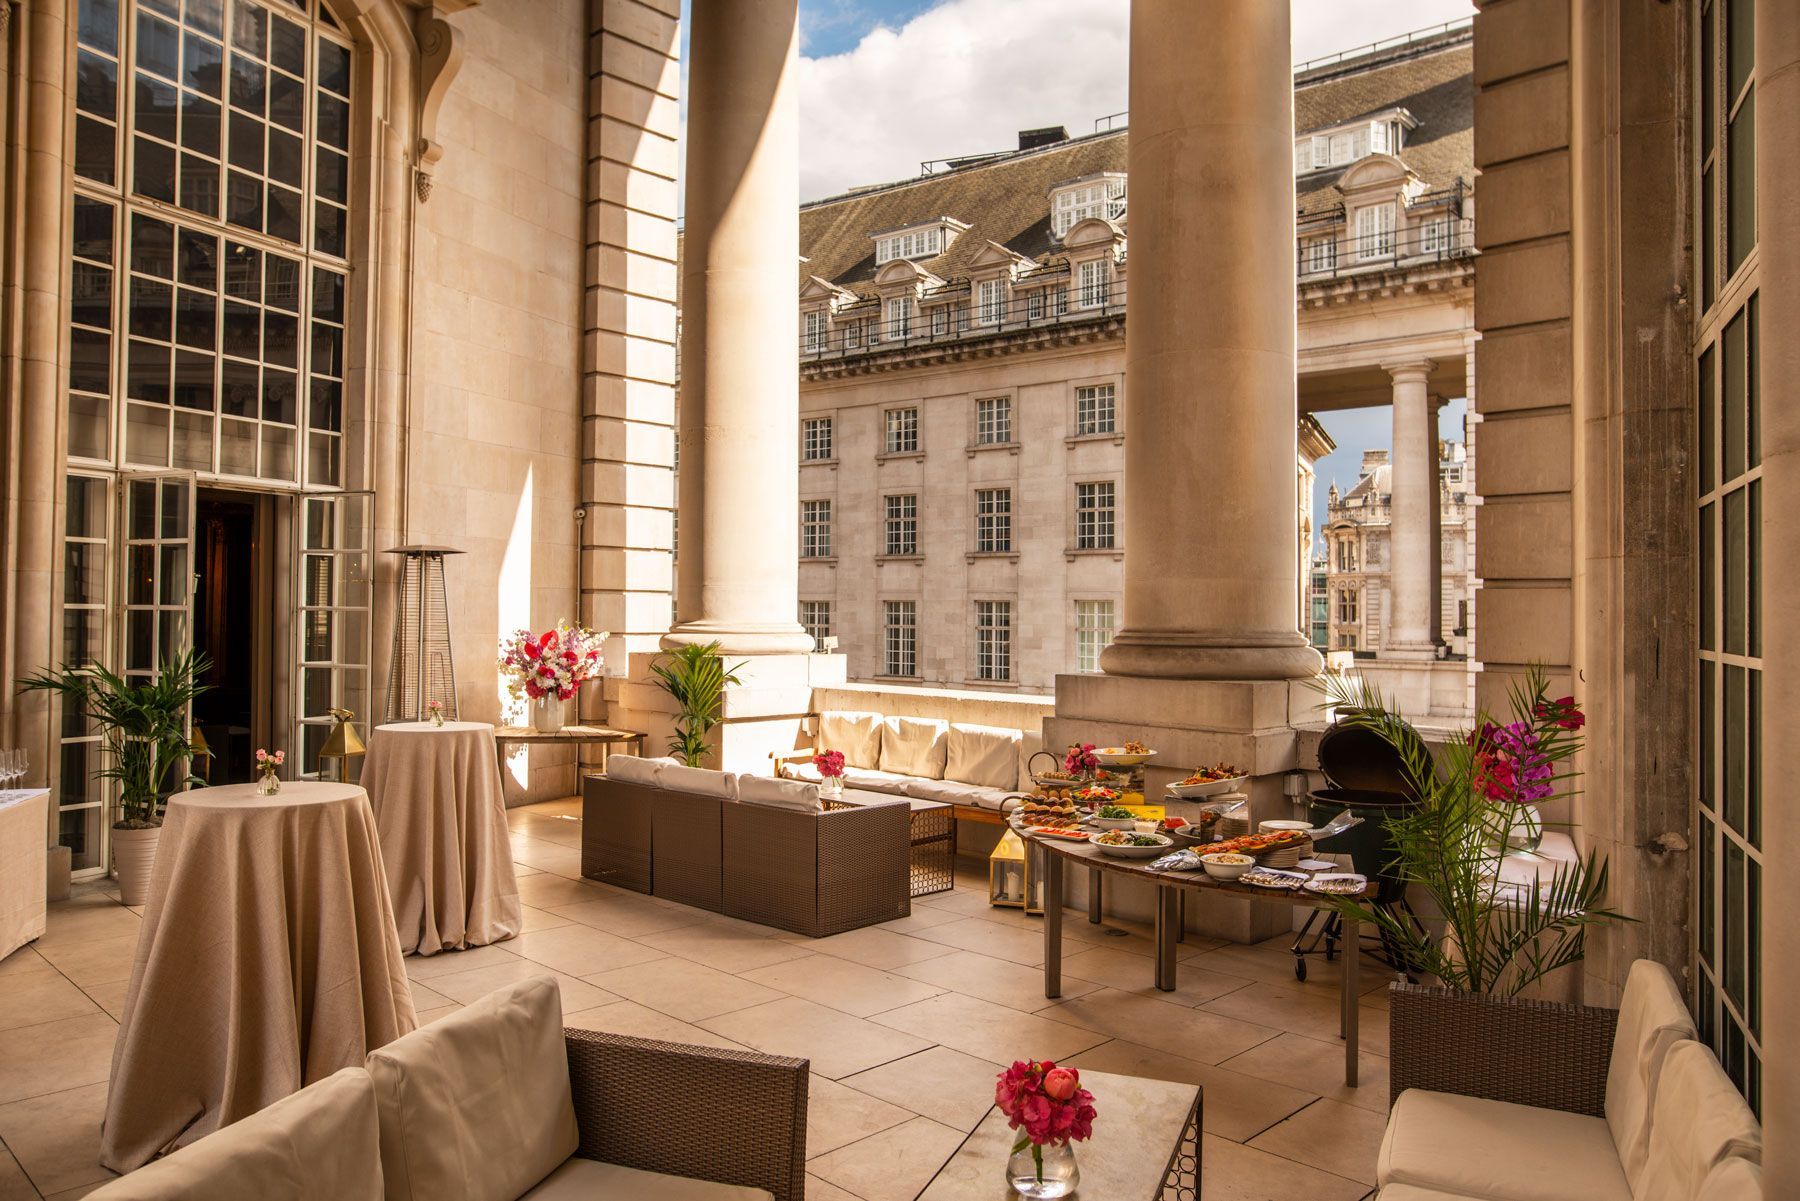 pompadour summer terrace hotel cafe royal london regent street events